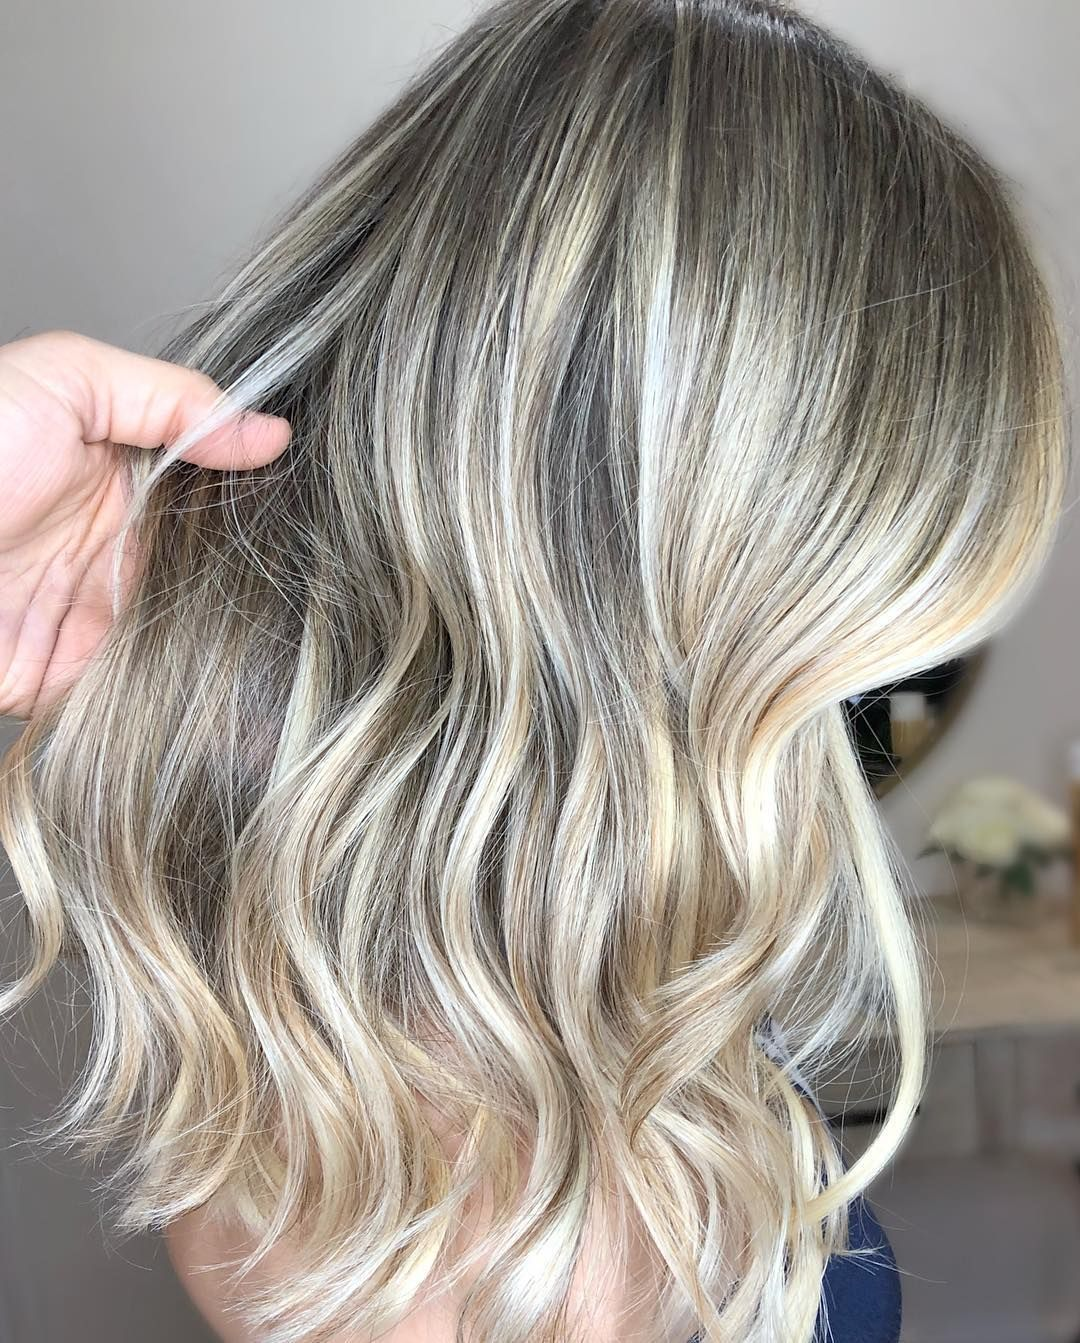 Pin by Shlomi Mor on Best Hair Colorist NYC | Hair ...